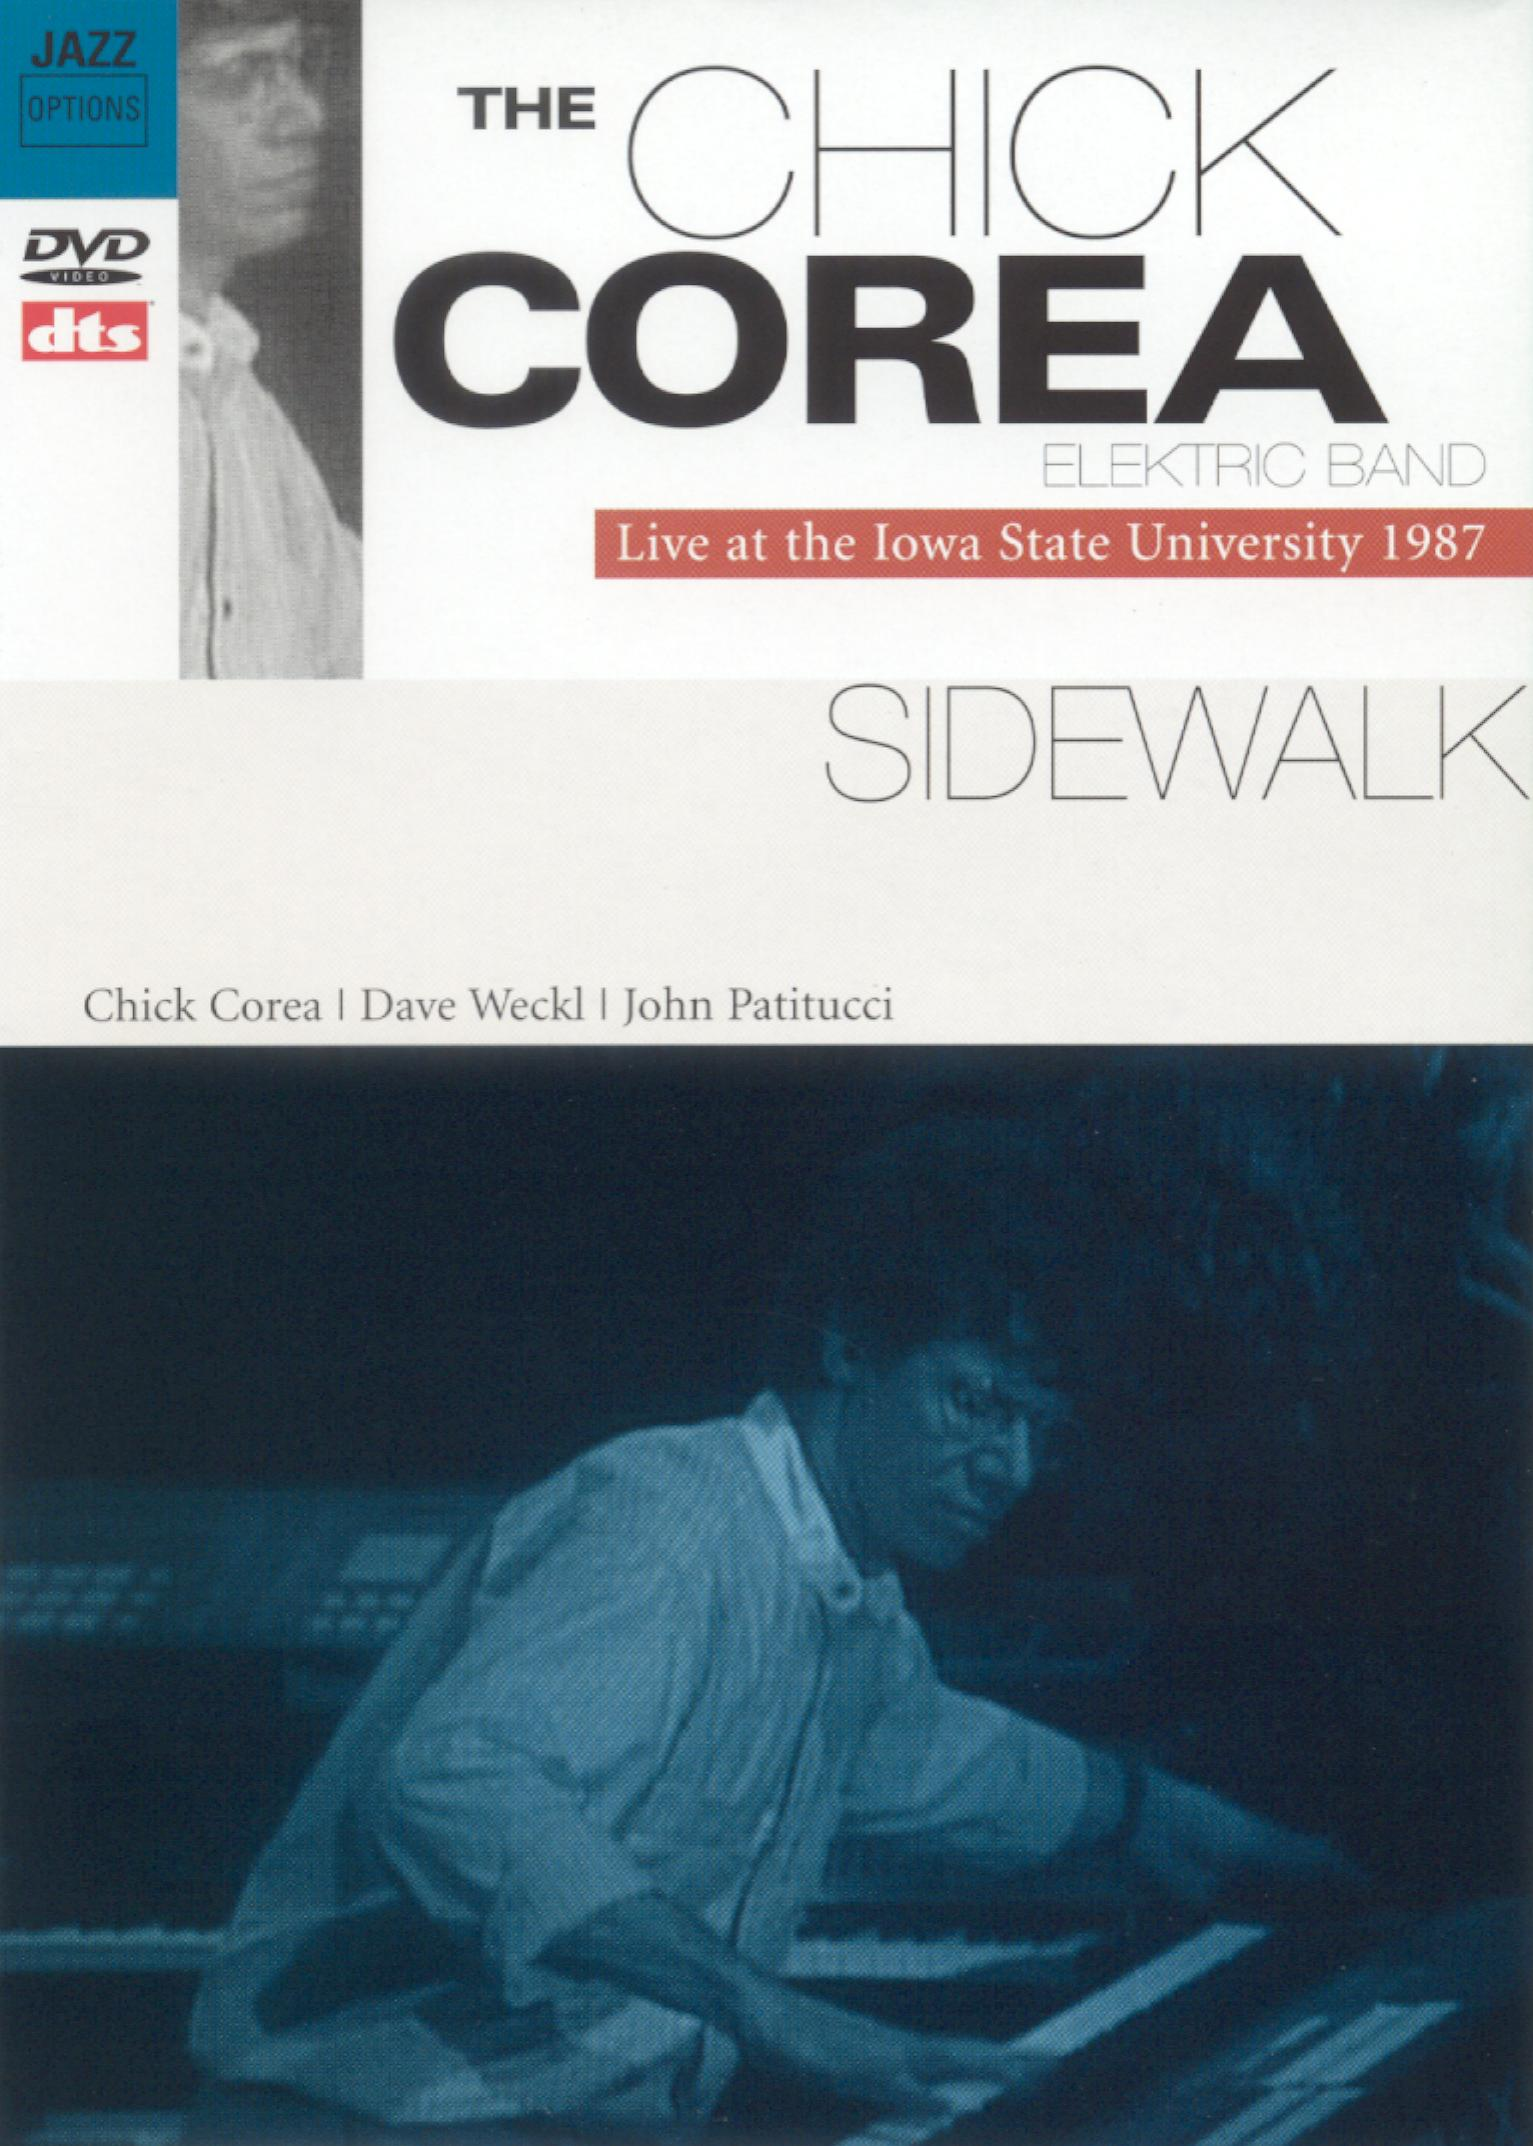 The Chick Corea Elektric Band: Live at the Iowa State University